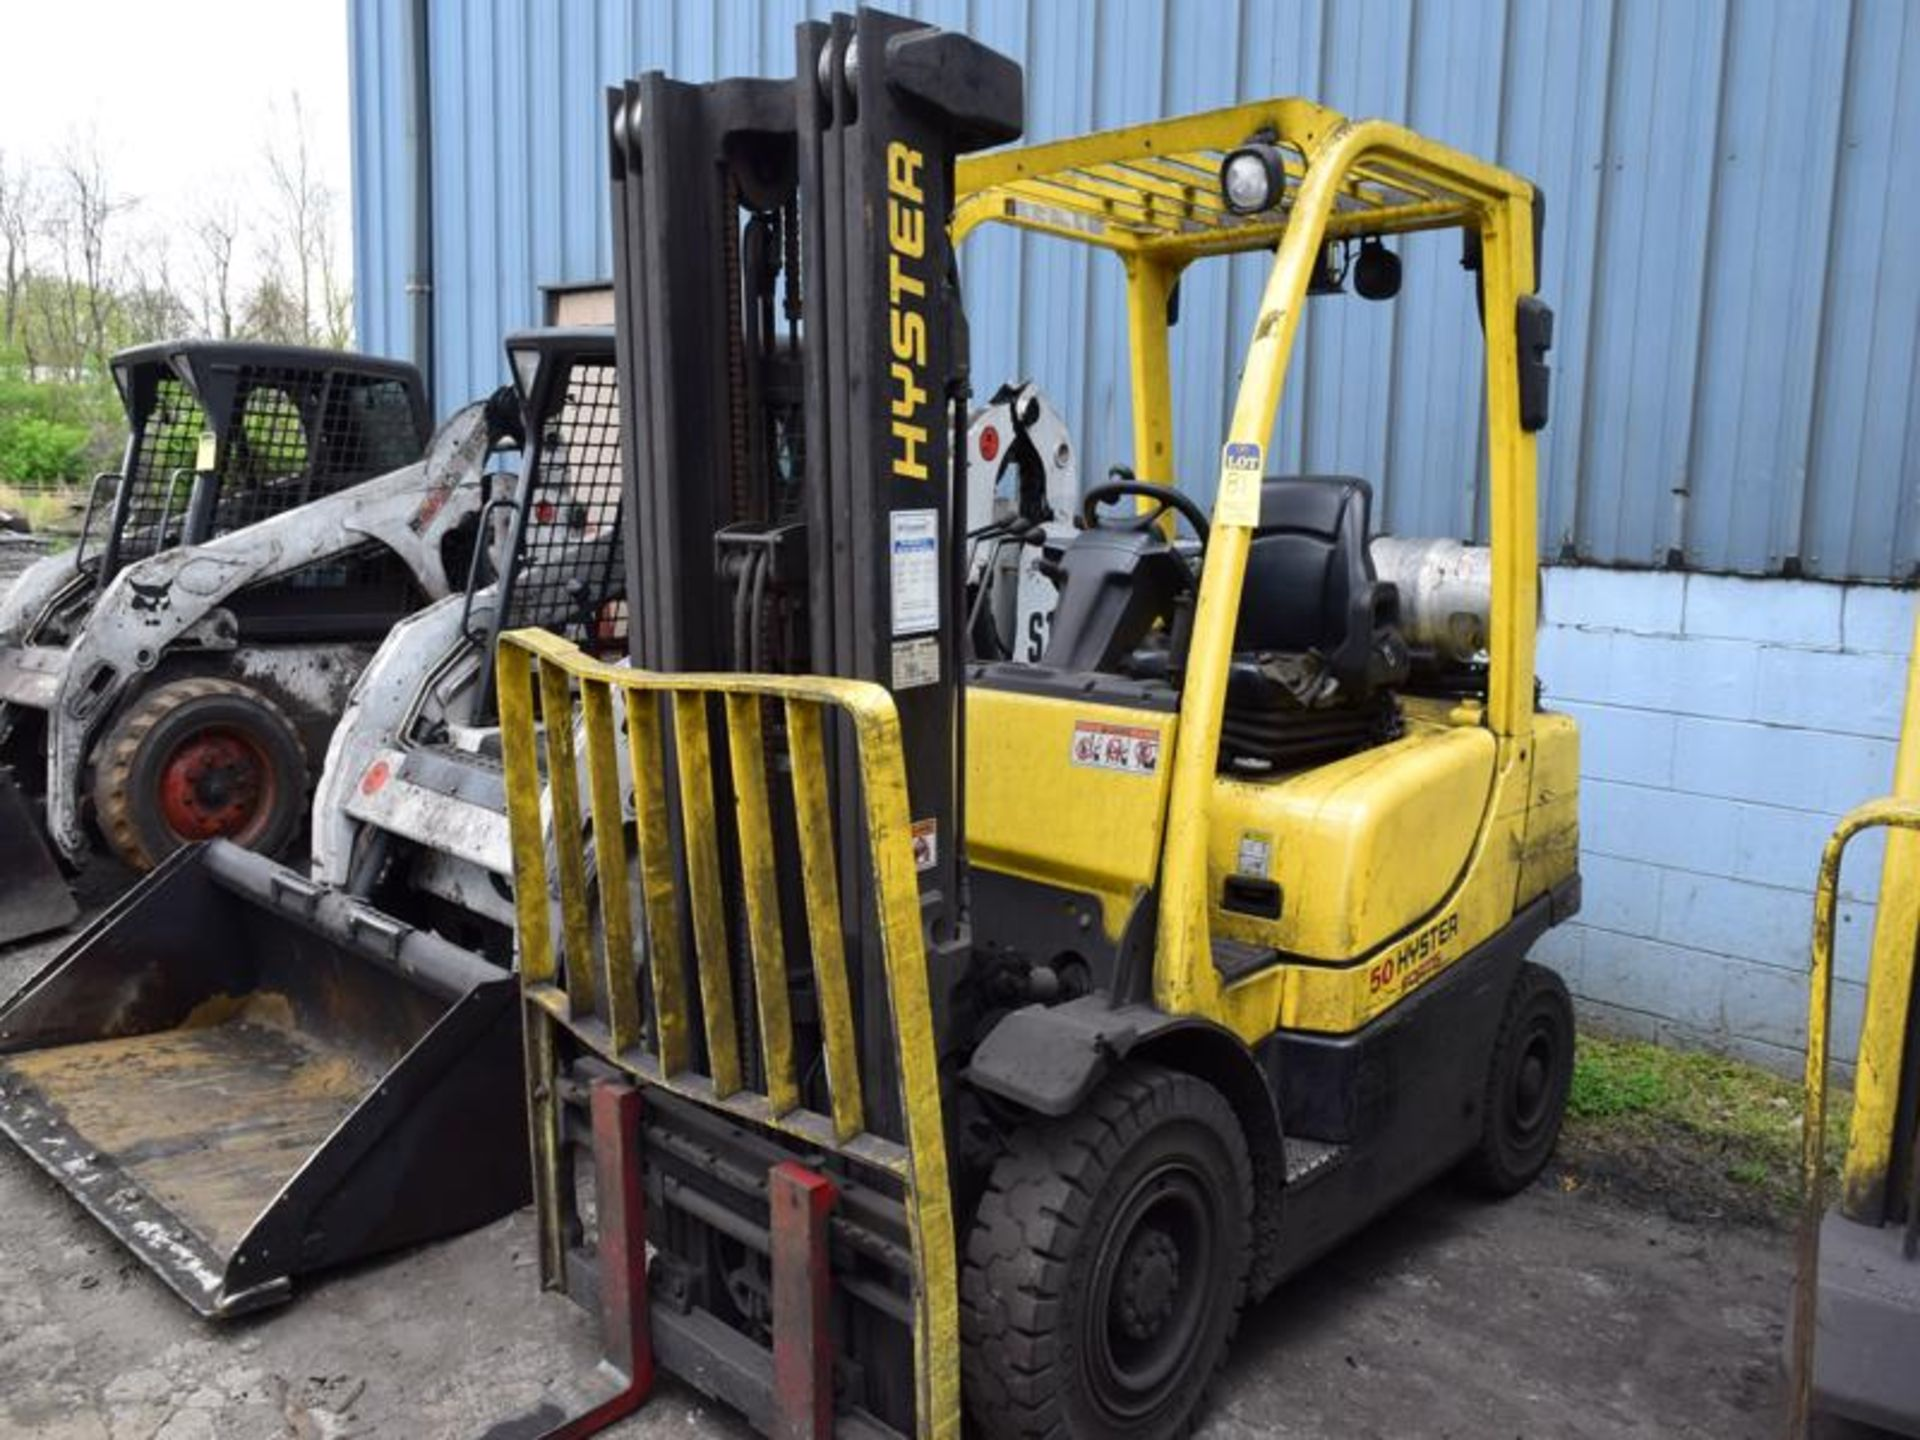 Lot 81 - Hyster model h50f1 5000# l/p powered fork lift truck s/n L177b16058M, 1783 hours, side shifter